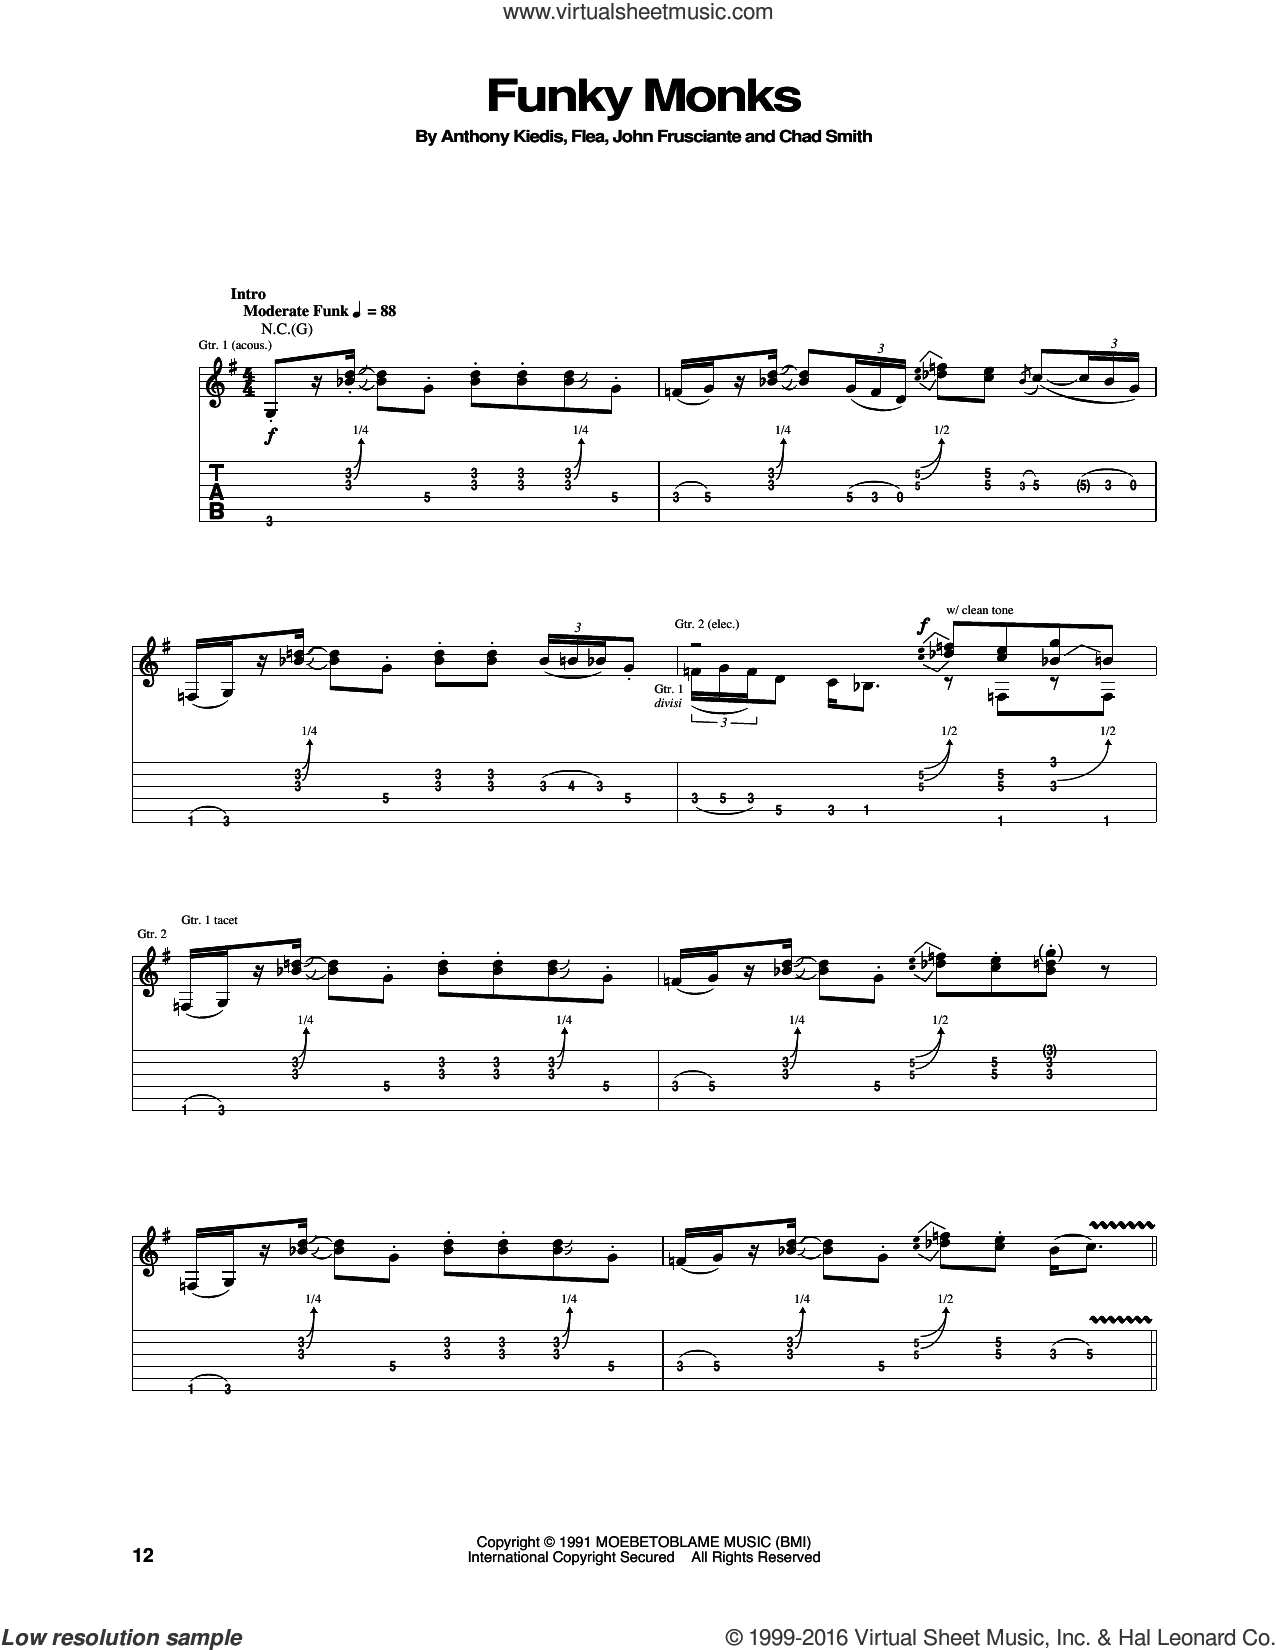 Funky Monks sheet music for guitar (tablature) by John Frusciante